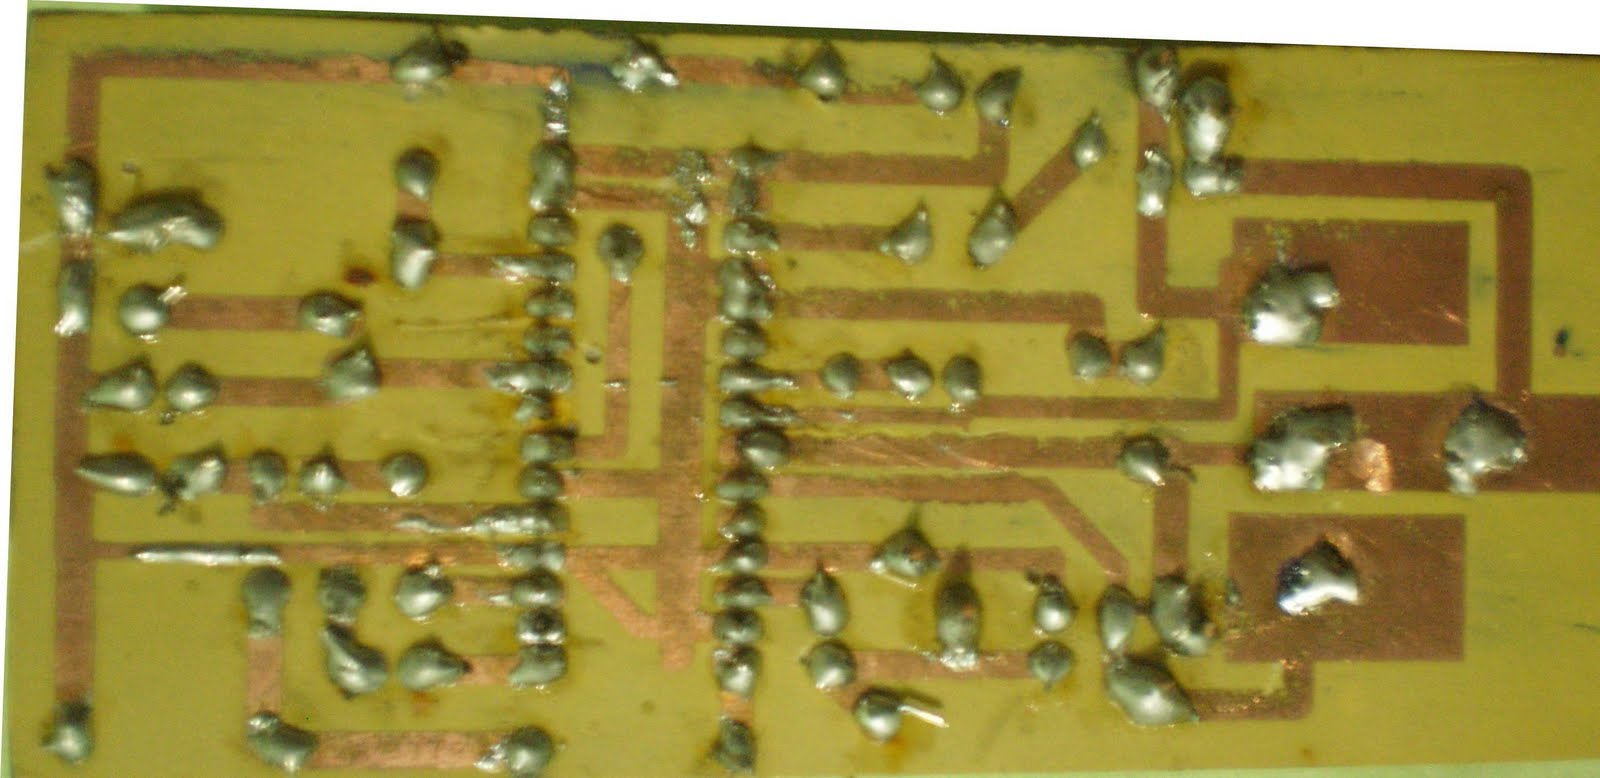 The Radio Circuit Fits On A Quite Small Pcb Board Of Around 8cm X 4cm